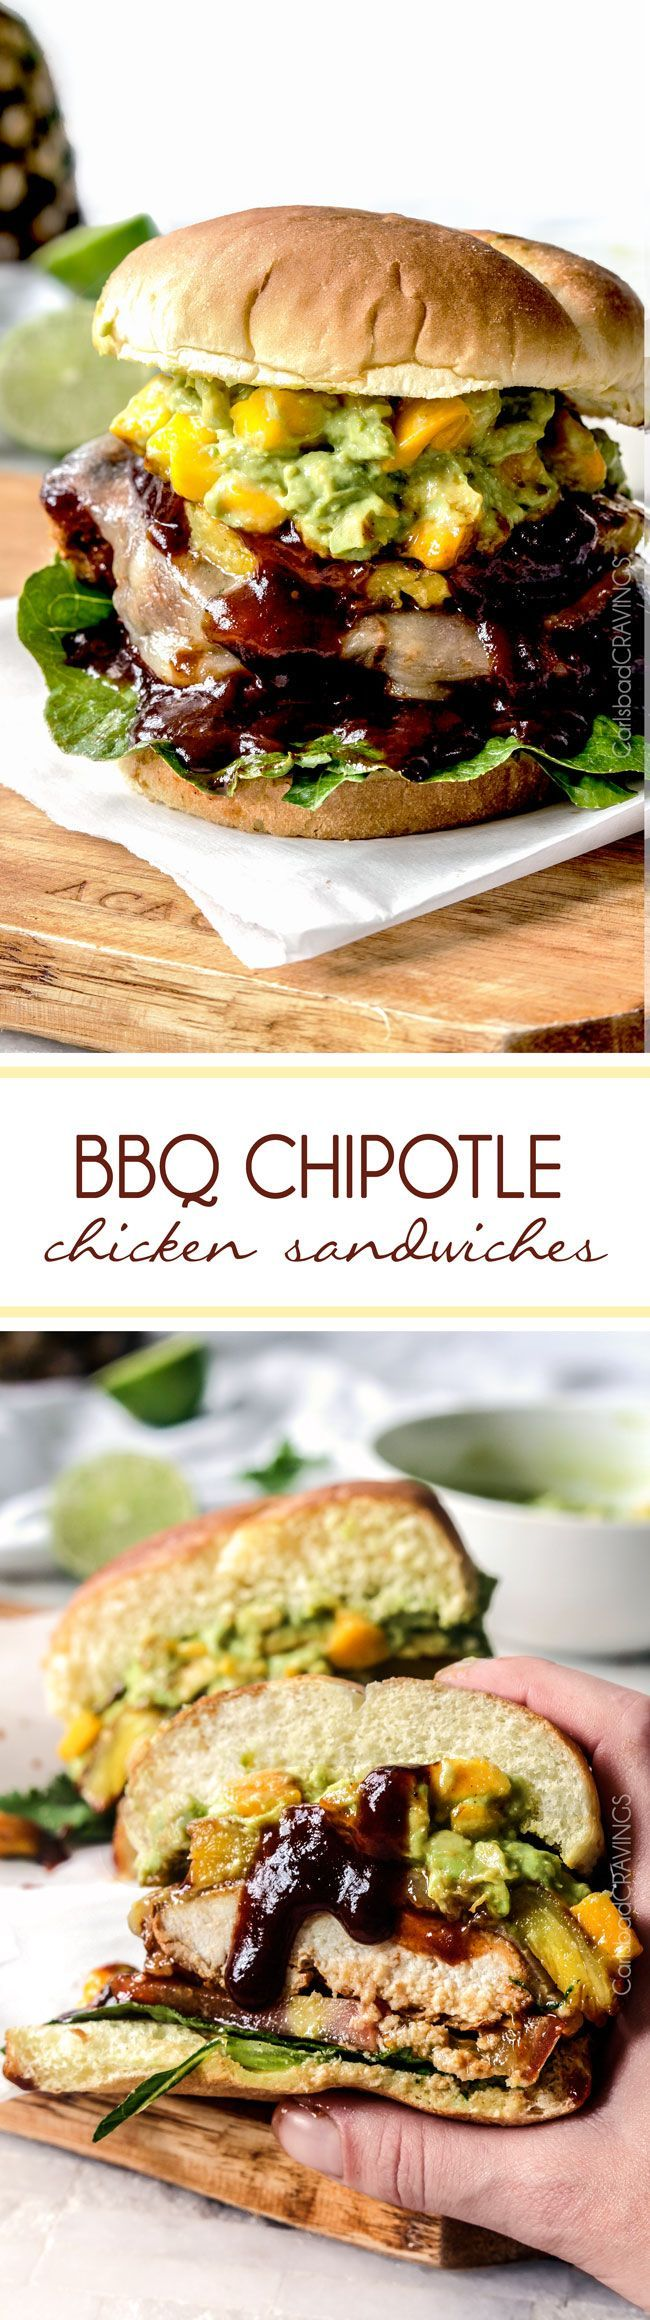 BBQ Chipotle Chicken Sandwiches (with Mango Guacamole) - Bursting with flavor, restaurant quality and so easy!